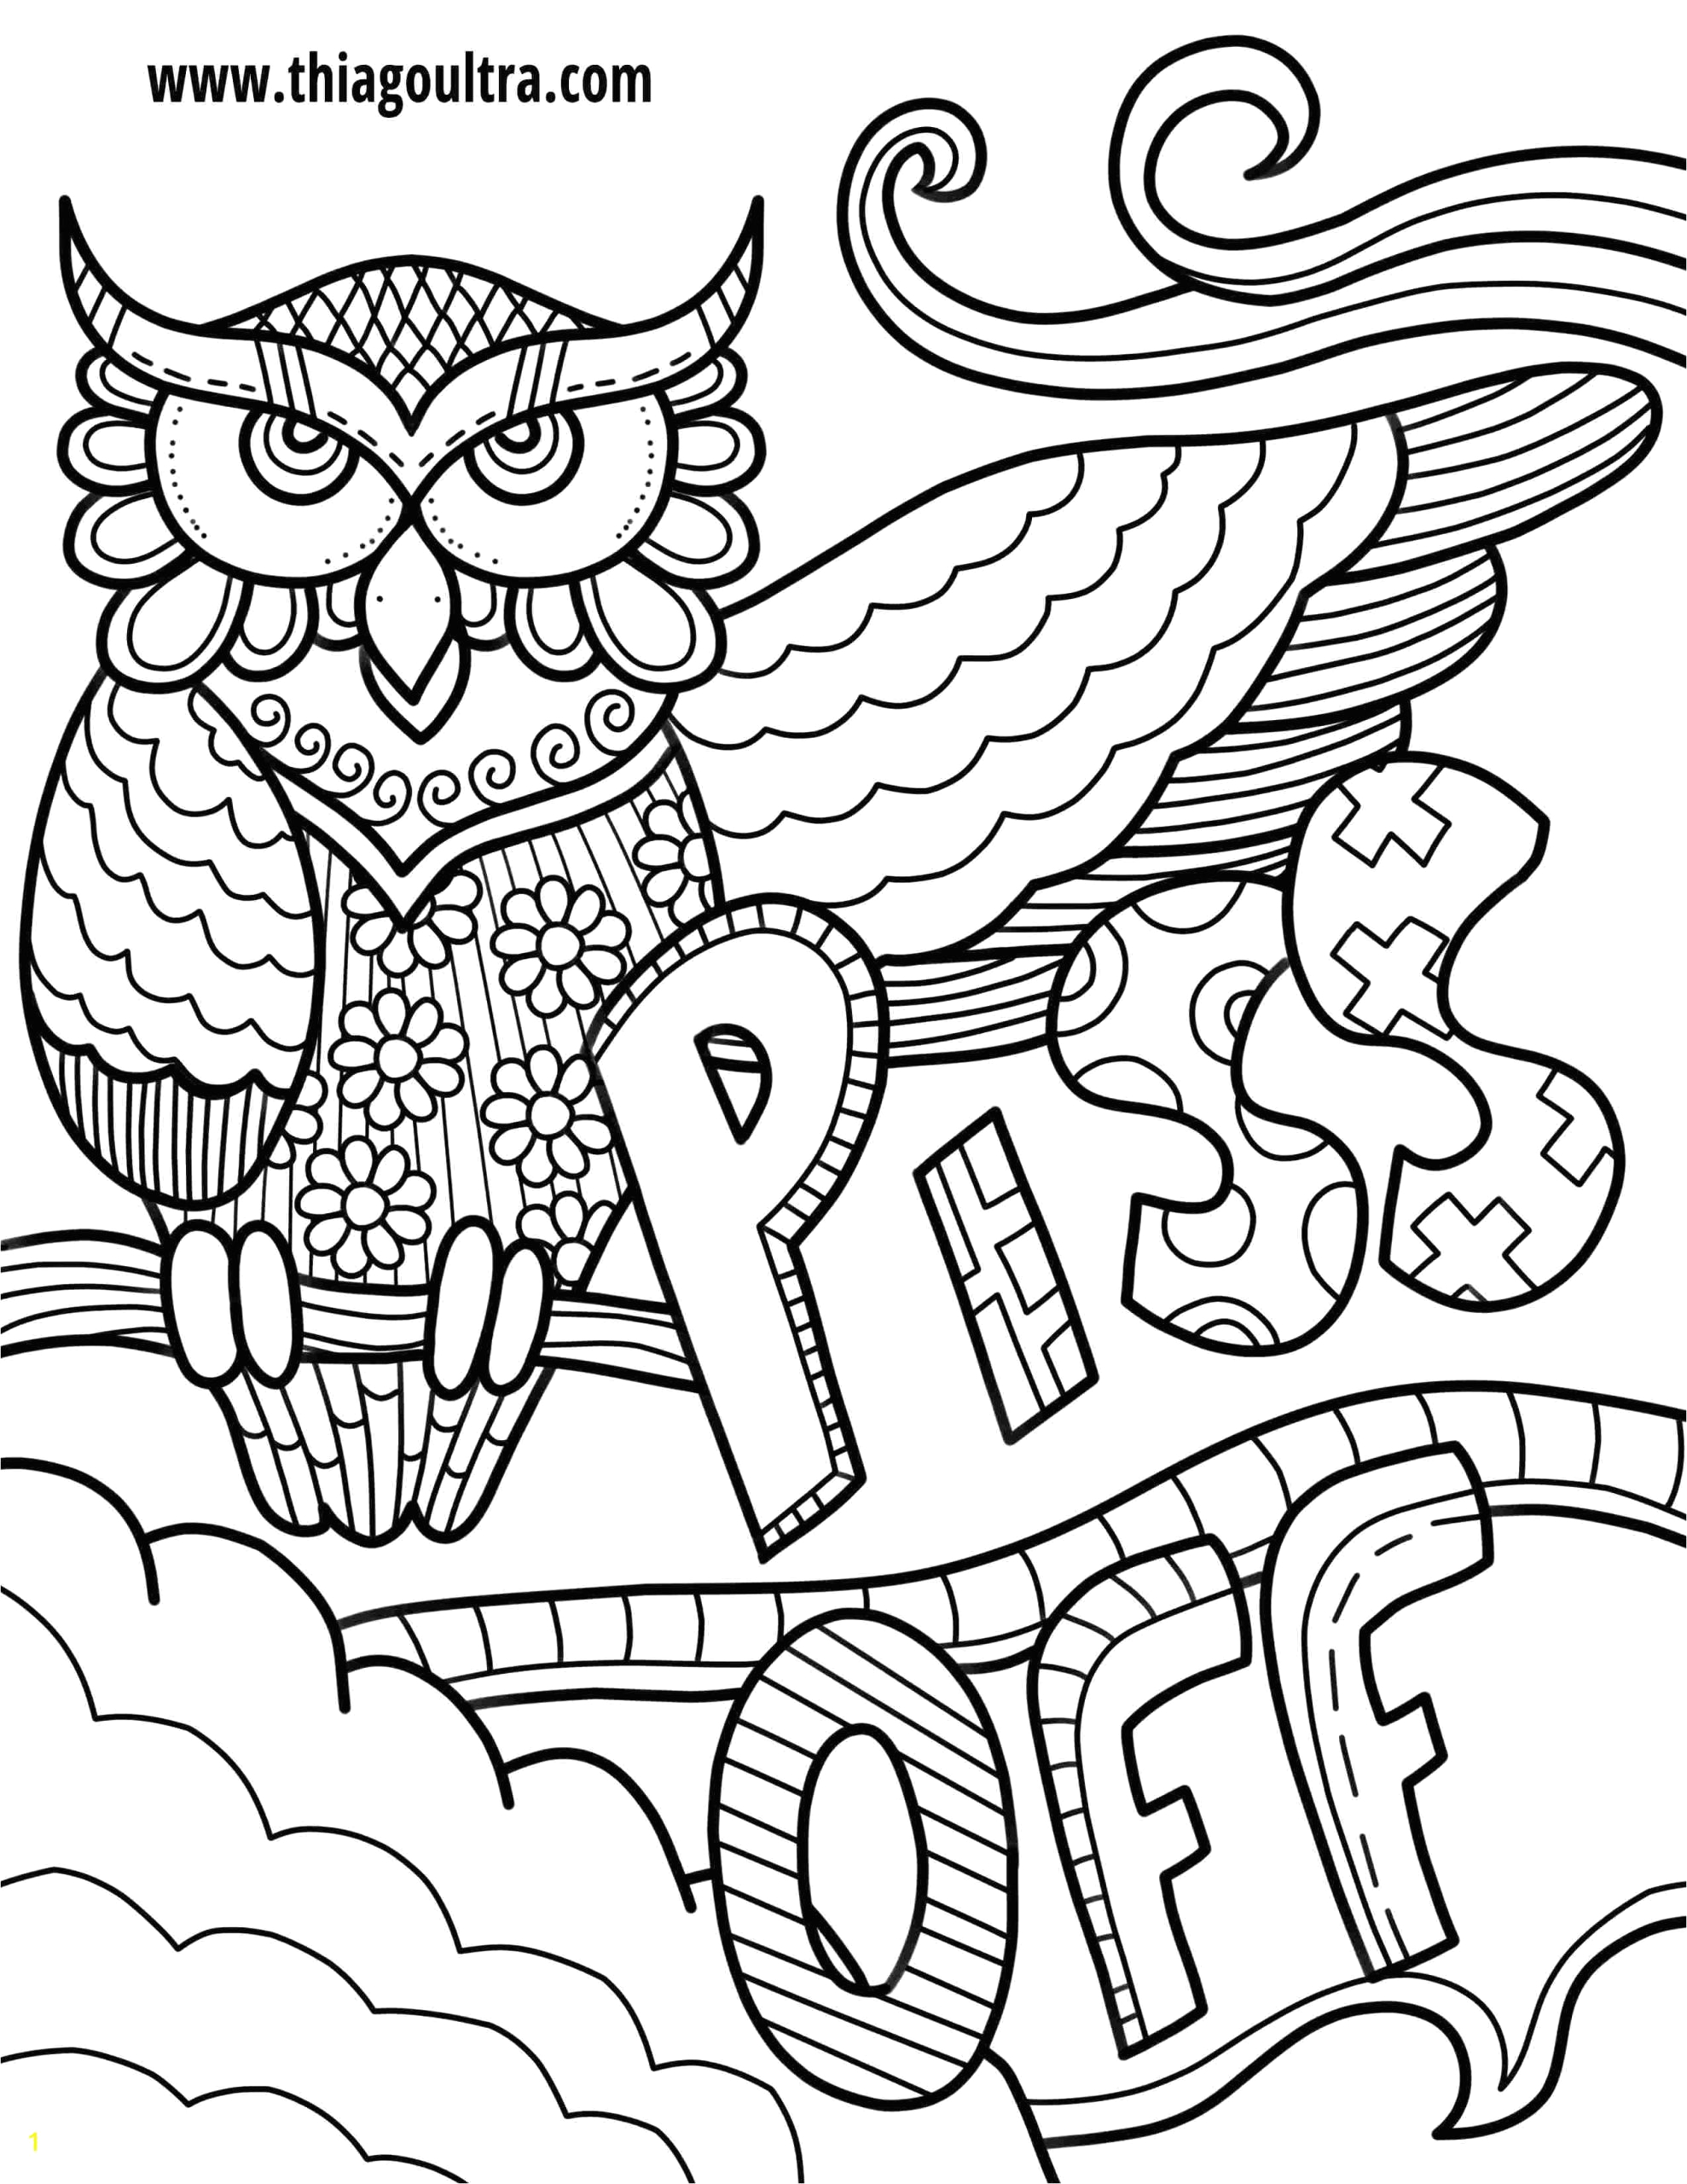 Free Printable Coloring Pages for Adults Only Swear Words Pdf Free Printable Coloring Pages for Adults Ly Swear Words